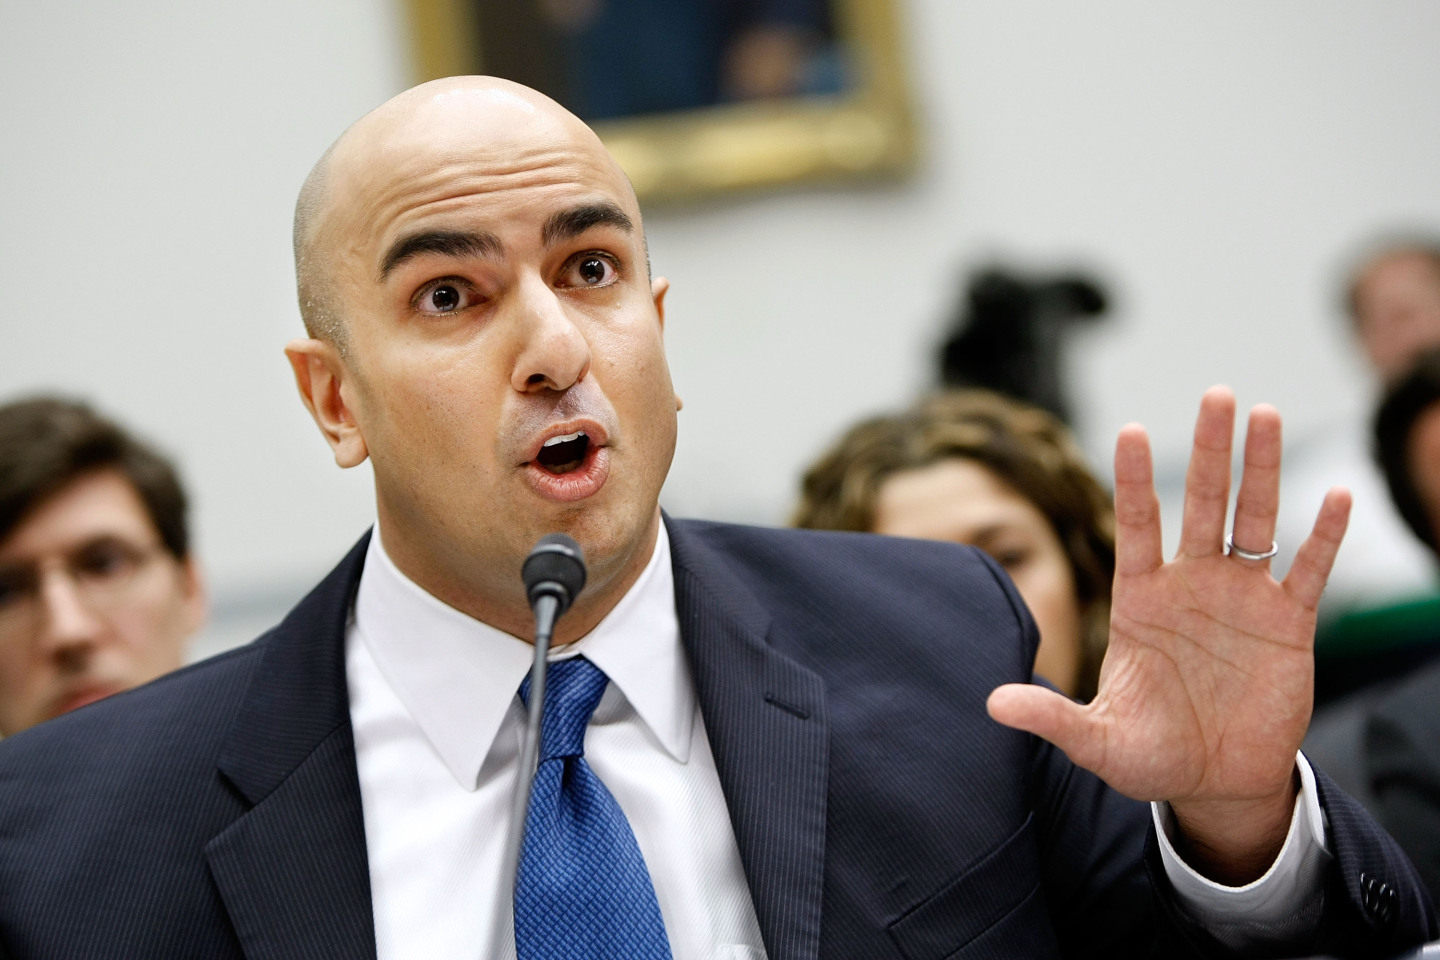 Neel Kashkari testifies before the House Domestic Policy Subcommittee during a 2009 hearing on Capitol Hill. Kashkari, the Treasury's acting interim assistant secretary for financial stabilization at the time, answered questions about the TARP, or Troubled Asset Relief Program, and heard complaints from both Republicans and Democrats that few people know where exactly the money is being spent. (Chip Somodevilla/Getty Images)